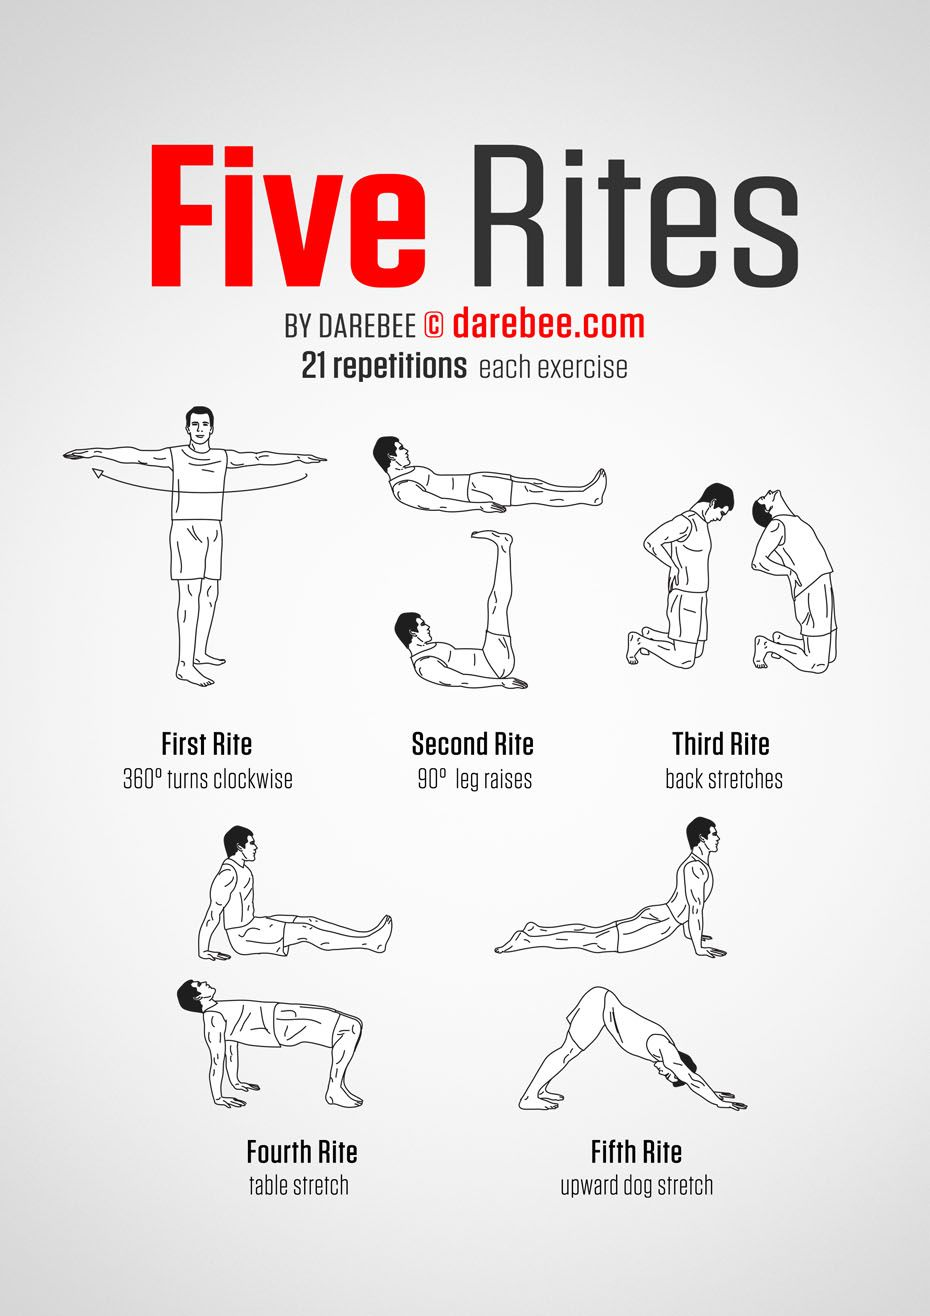 Five Rites Workout  Darebee  Work it  Yoga Yoga